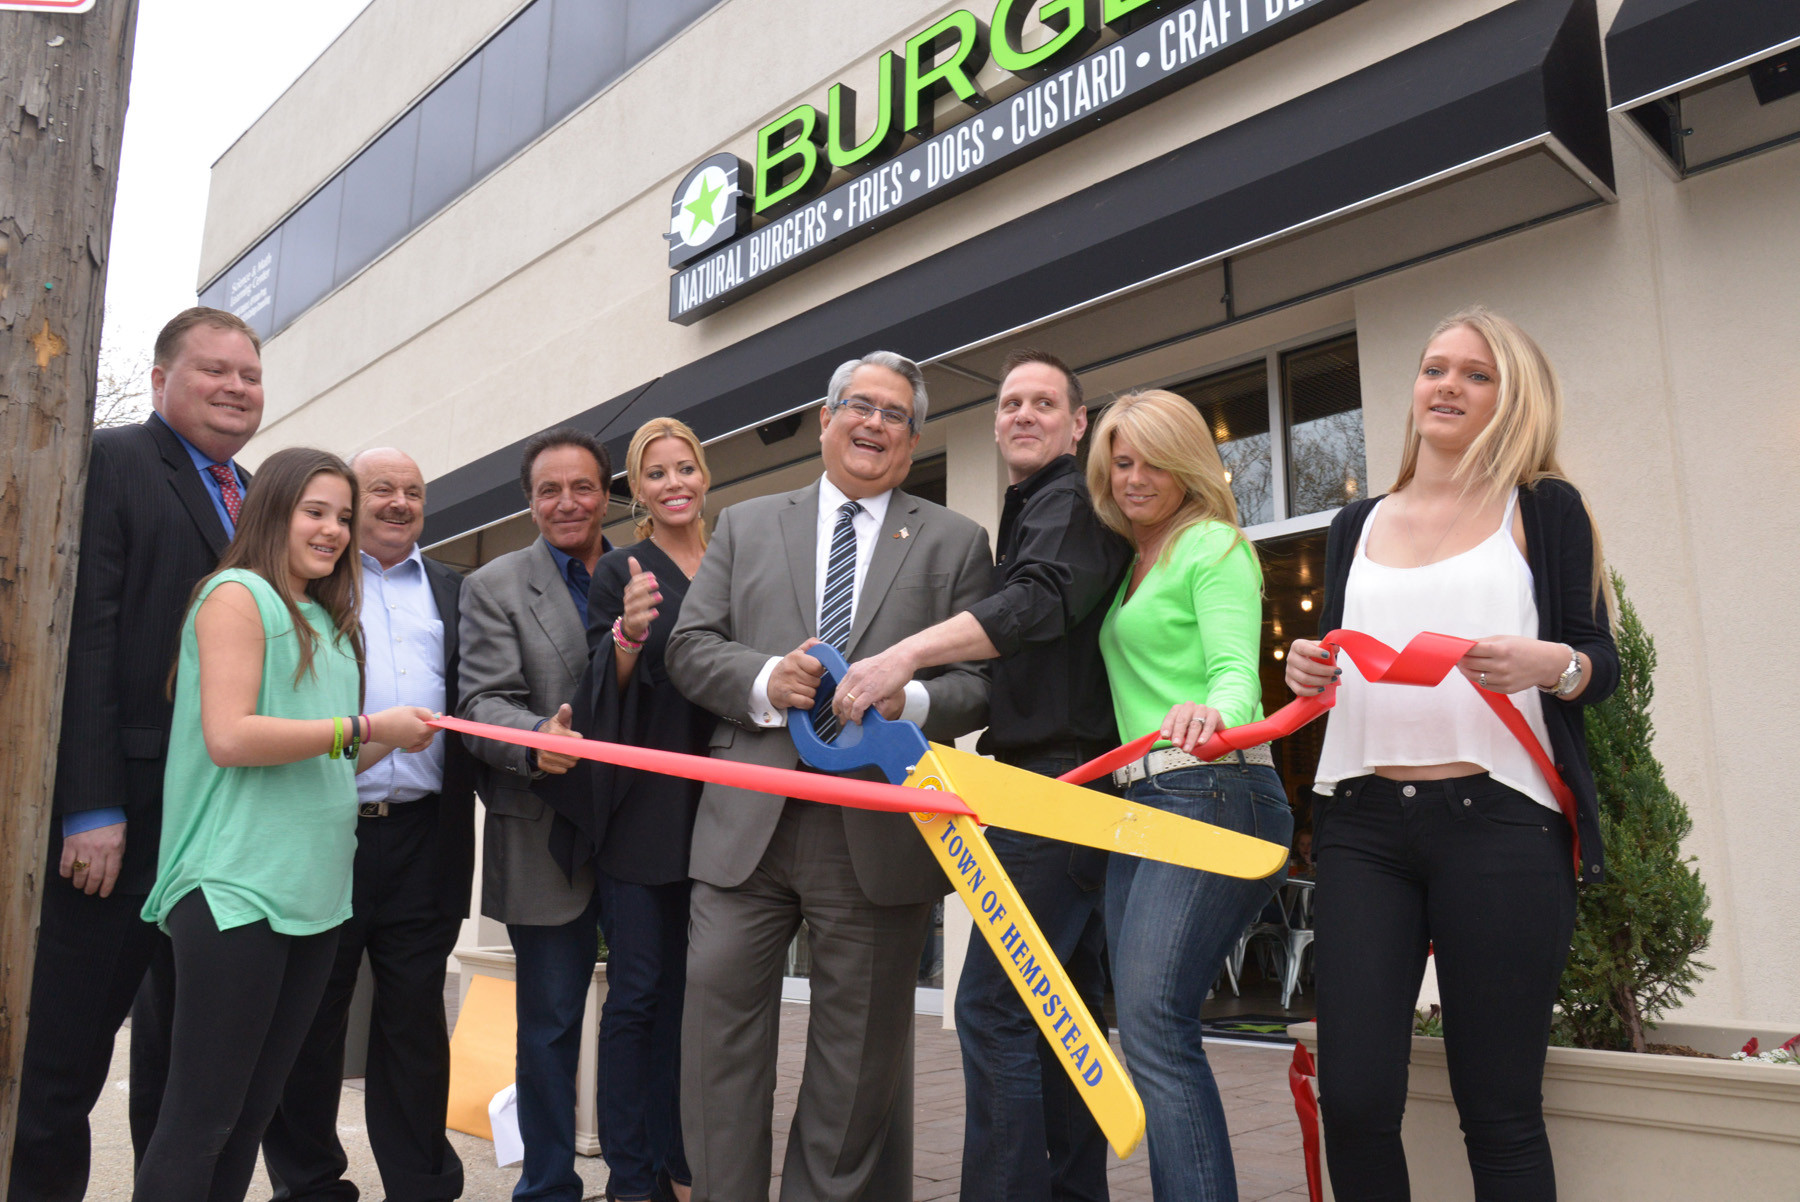 Chris Brown, representing County Executive Ed Mangano. Becky Sarro, Alex Berkovich. John and Dawn Rosati (owners), Town Leg. Anthony Santino, Mark and Maryanne Sarro (owners) and Jillian Sarro  at the  ribbon cutting  for the new Burgerfi.